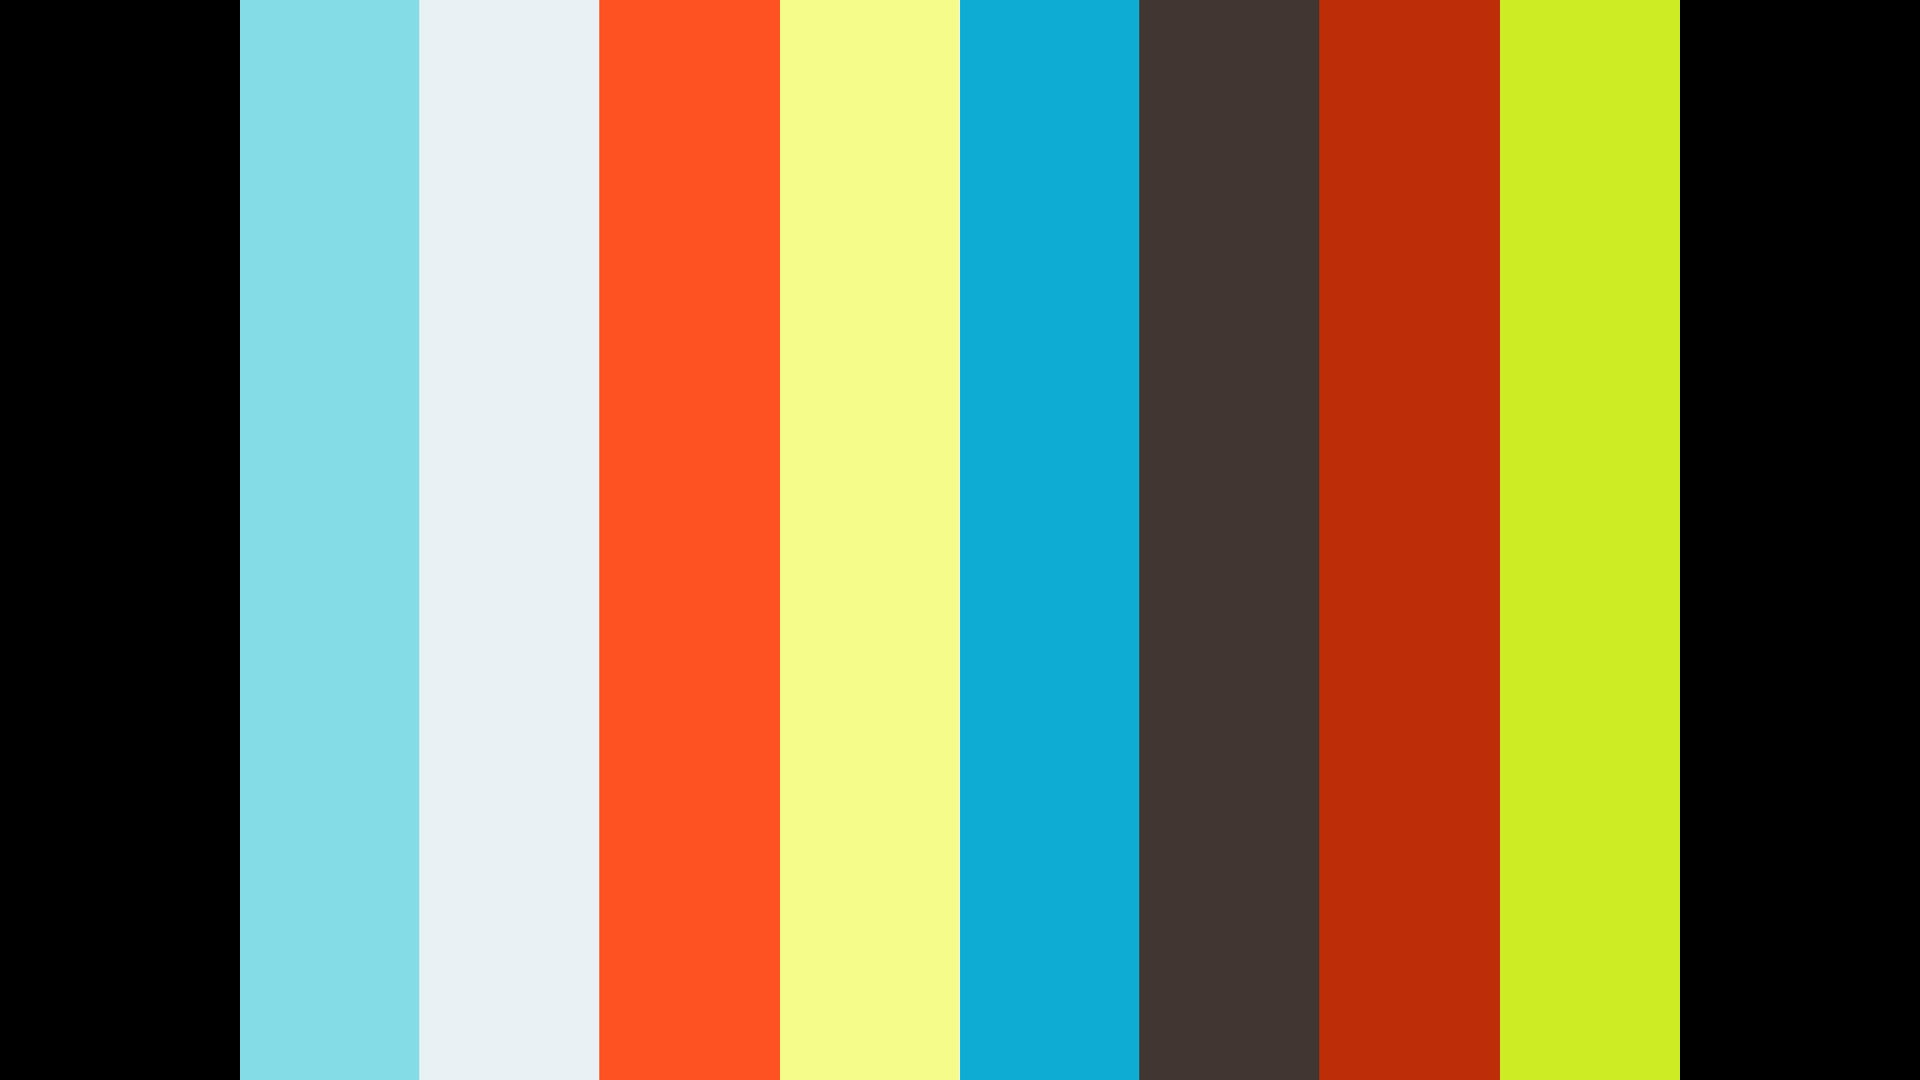 ChannelNEXT Overview